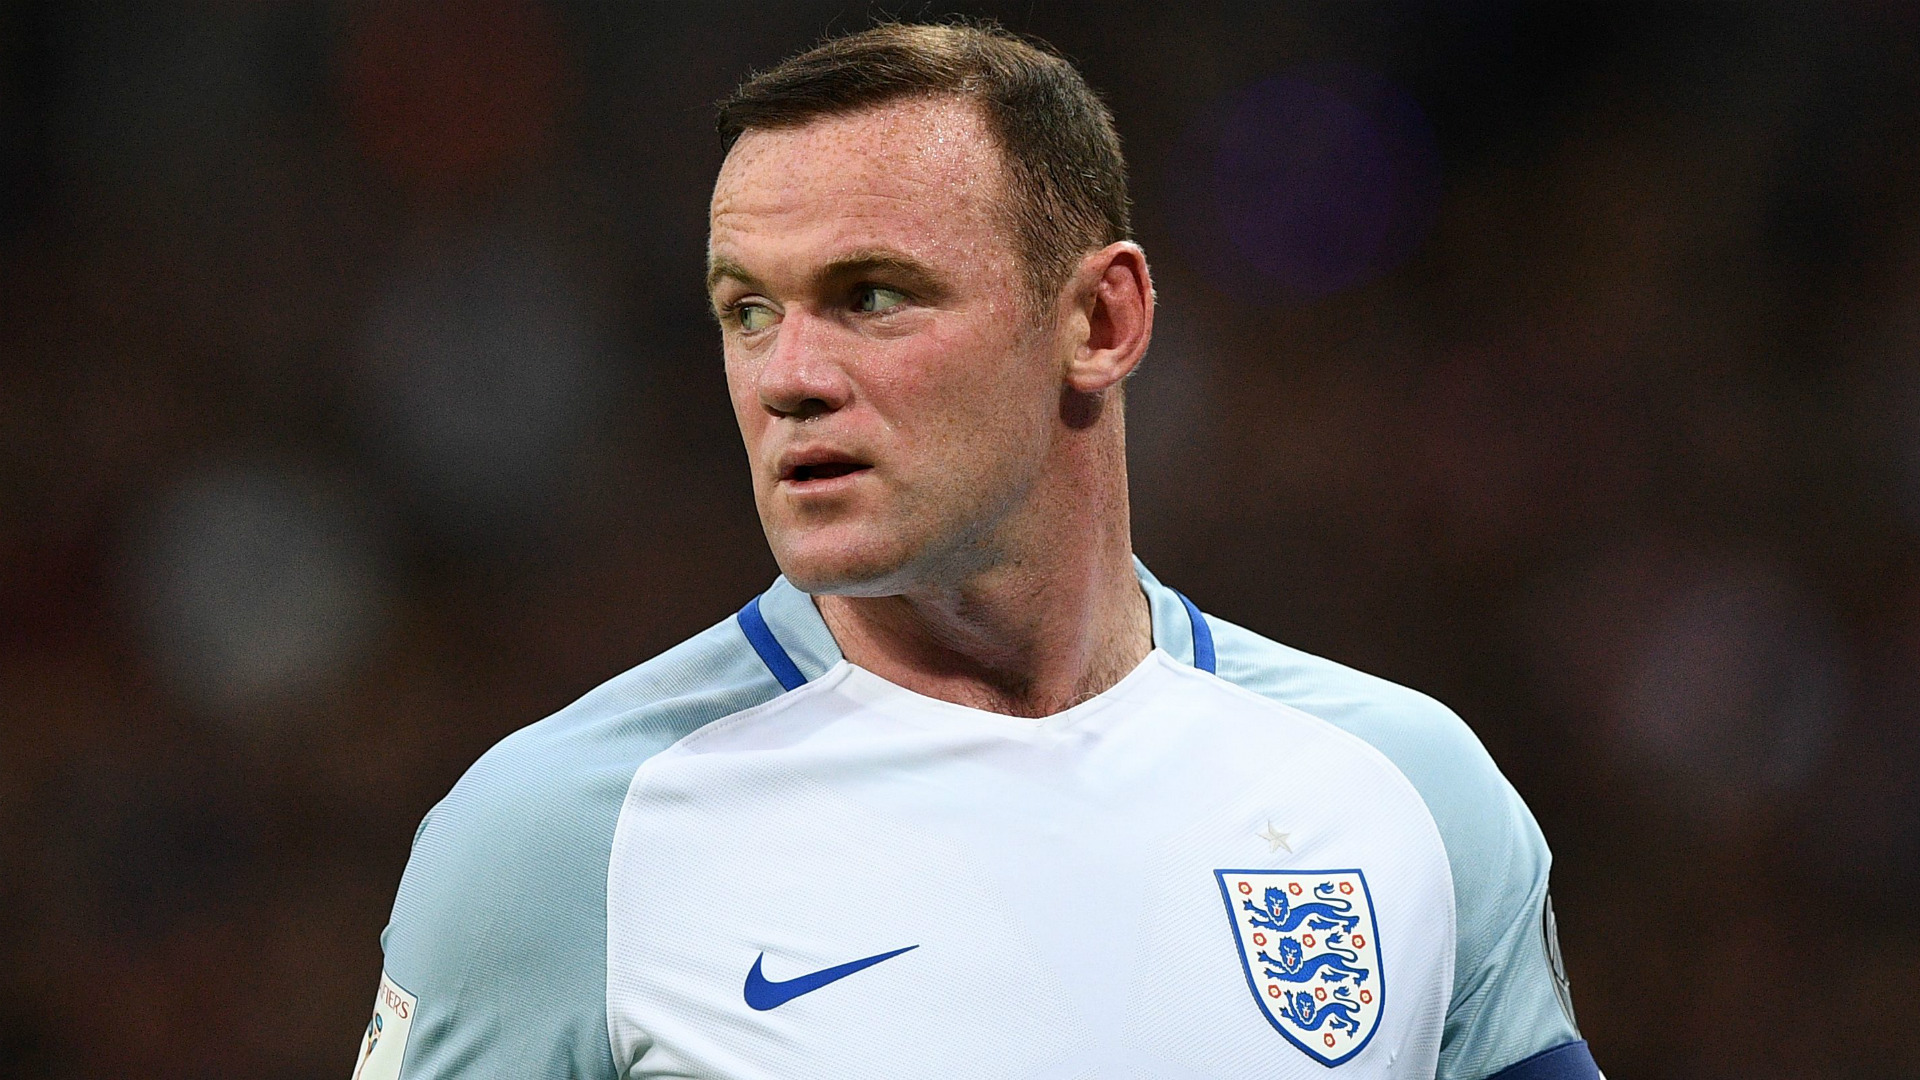 Wayne Rooney defends decision to make England farewell against United States